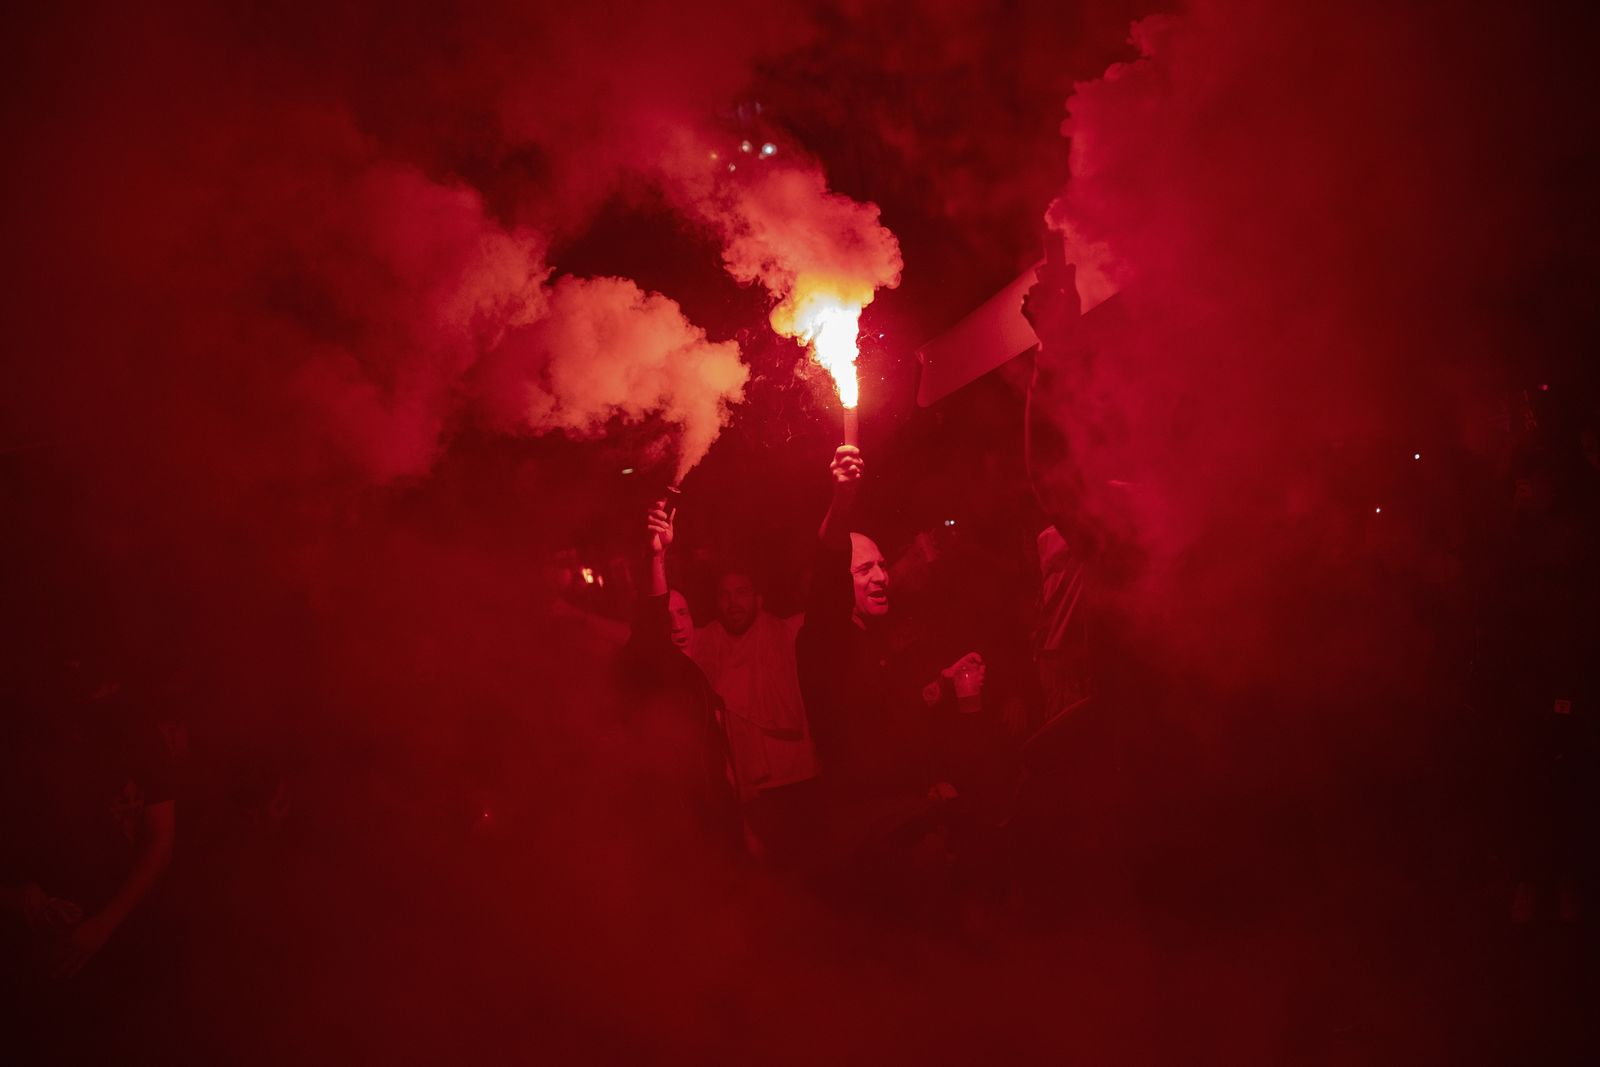 Right wing pro-Spanish unity supporters light flares during a demonstration in Barcelona, Spain, Thursday, Oct. 17, 2019. (AP Photo/Bernat Armangue)